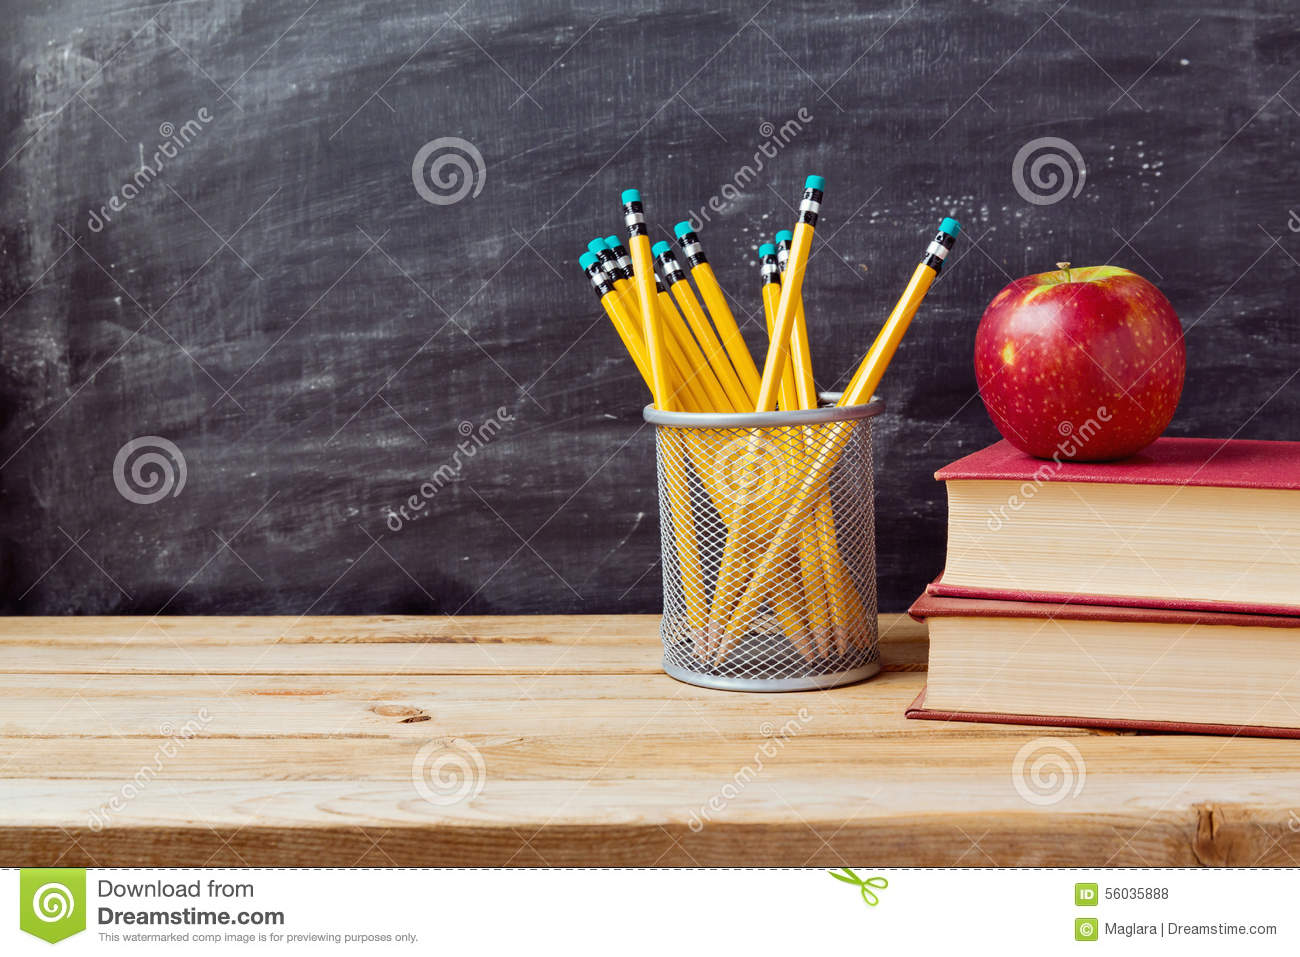 Download Back To School Background With Books, Pencils And Apple Over Chalkboard Stock Photo - Image of apple, read: 56035888